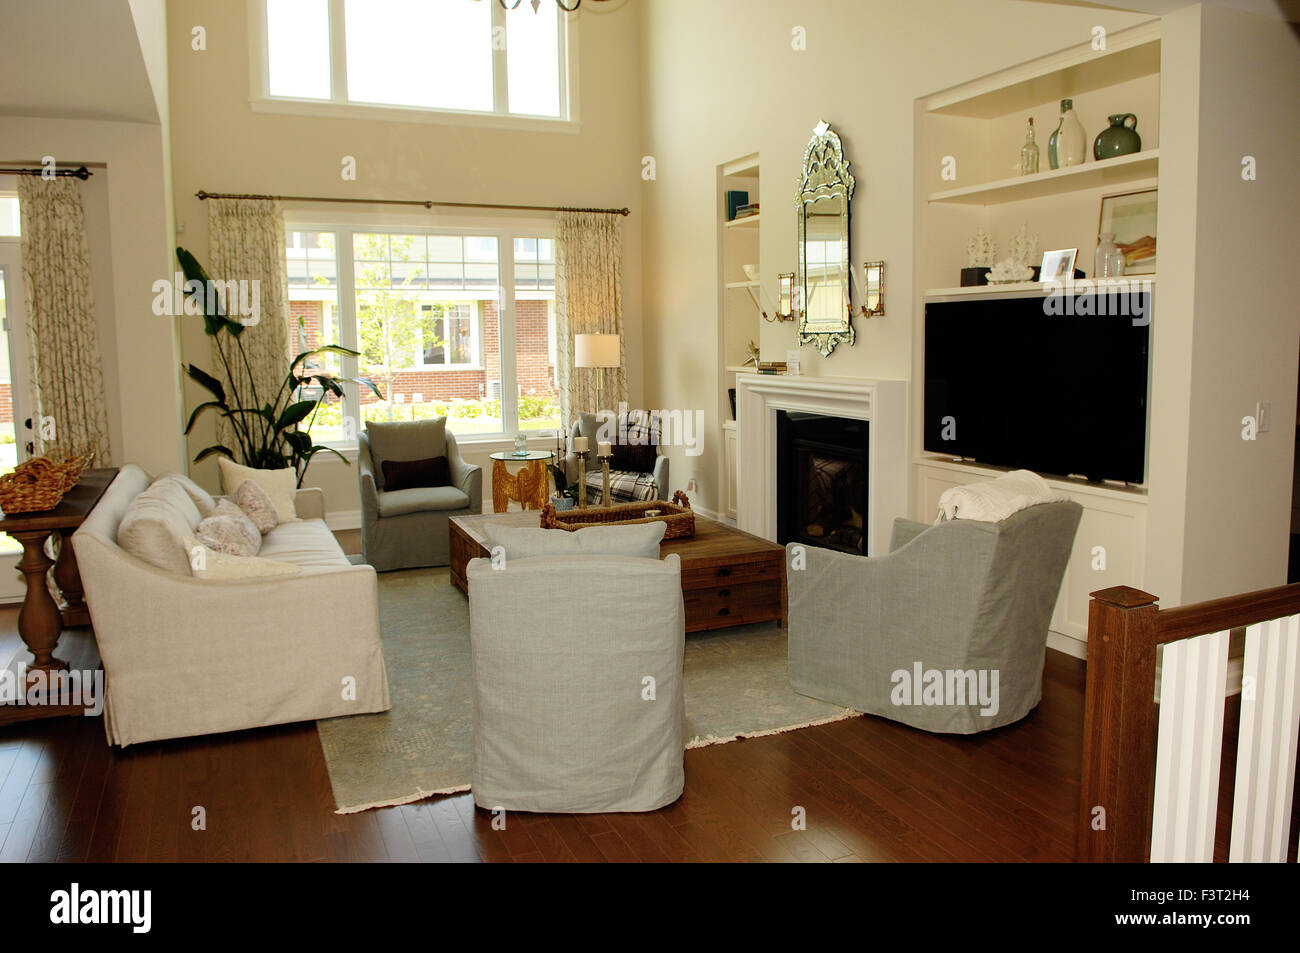 A Great Elegant Living Room With High Sealing And Window S Fireplace Stock Photo Alamy